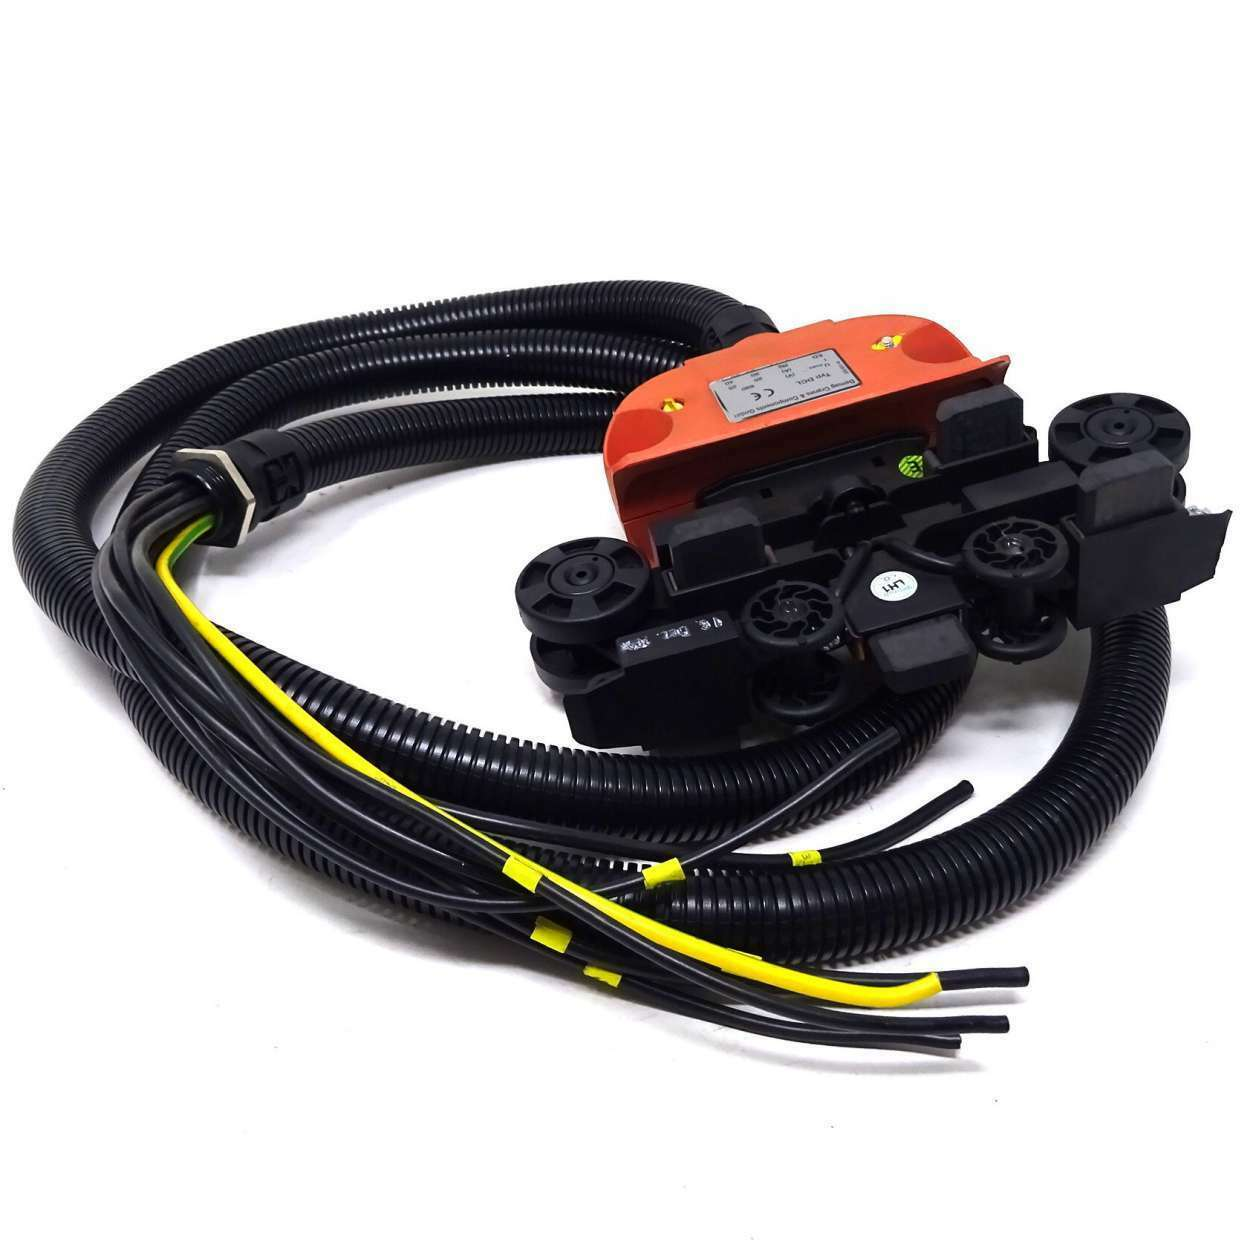 Pro Compact Conductor Line 876 631 44 Demag Cranes Components Dcl 690v New Ebay